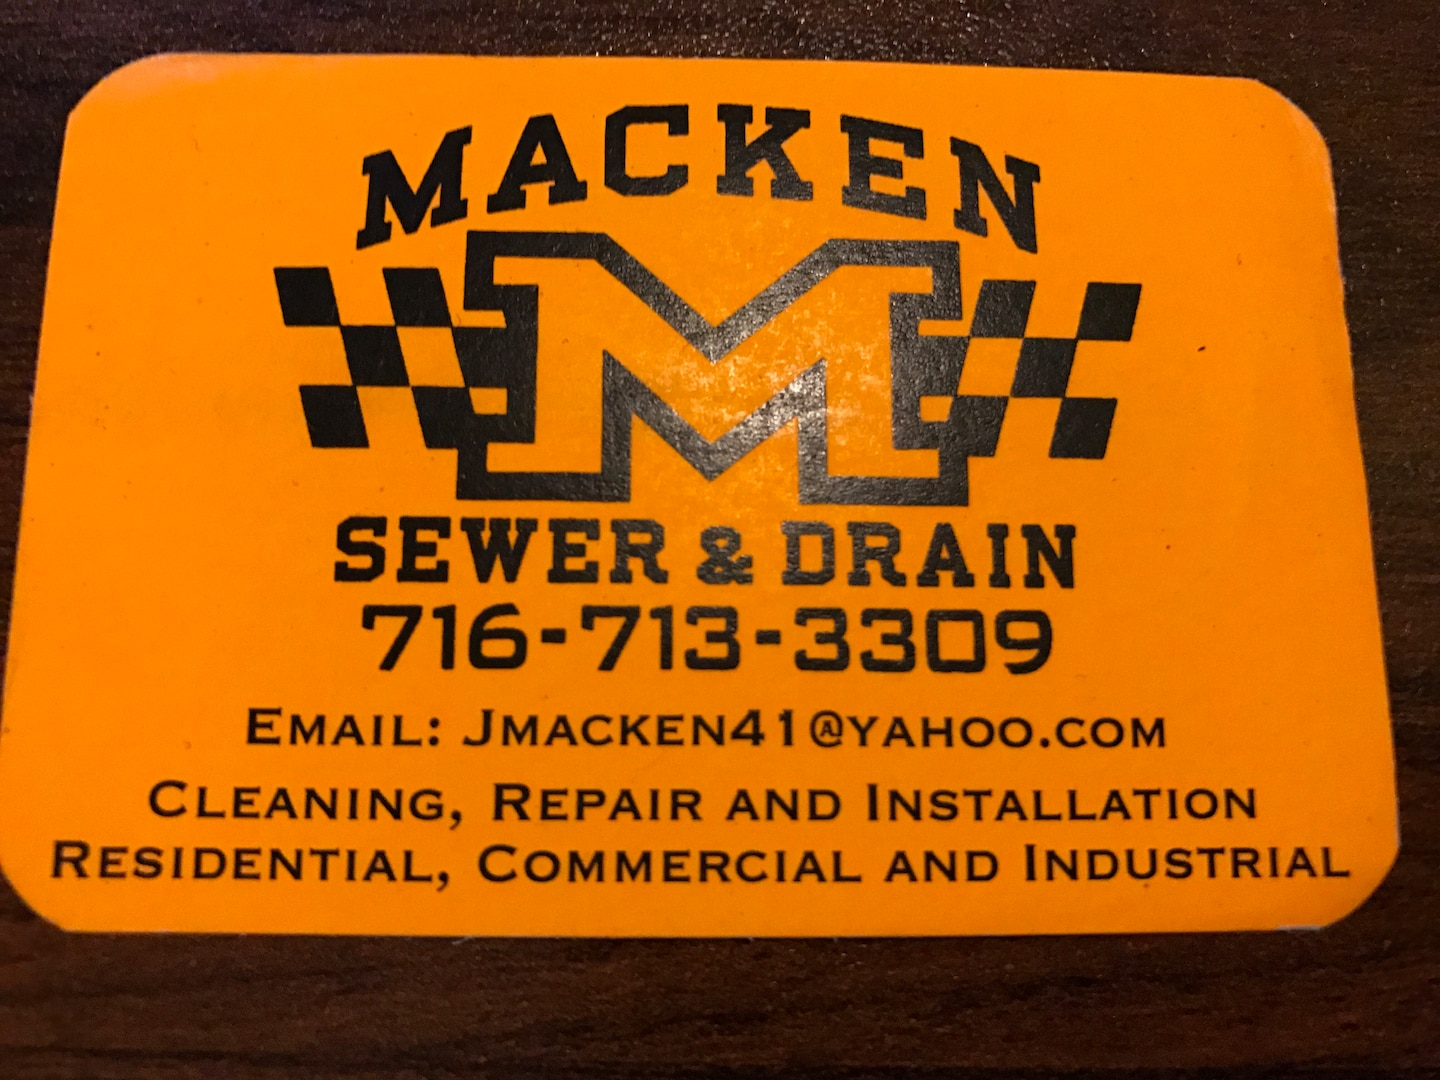 Macken Sewer & Drain, LLC